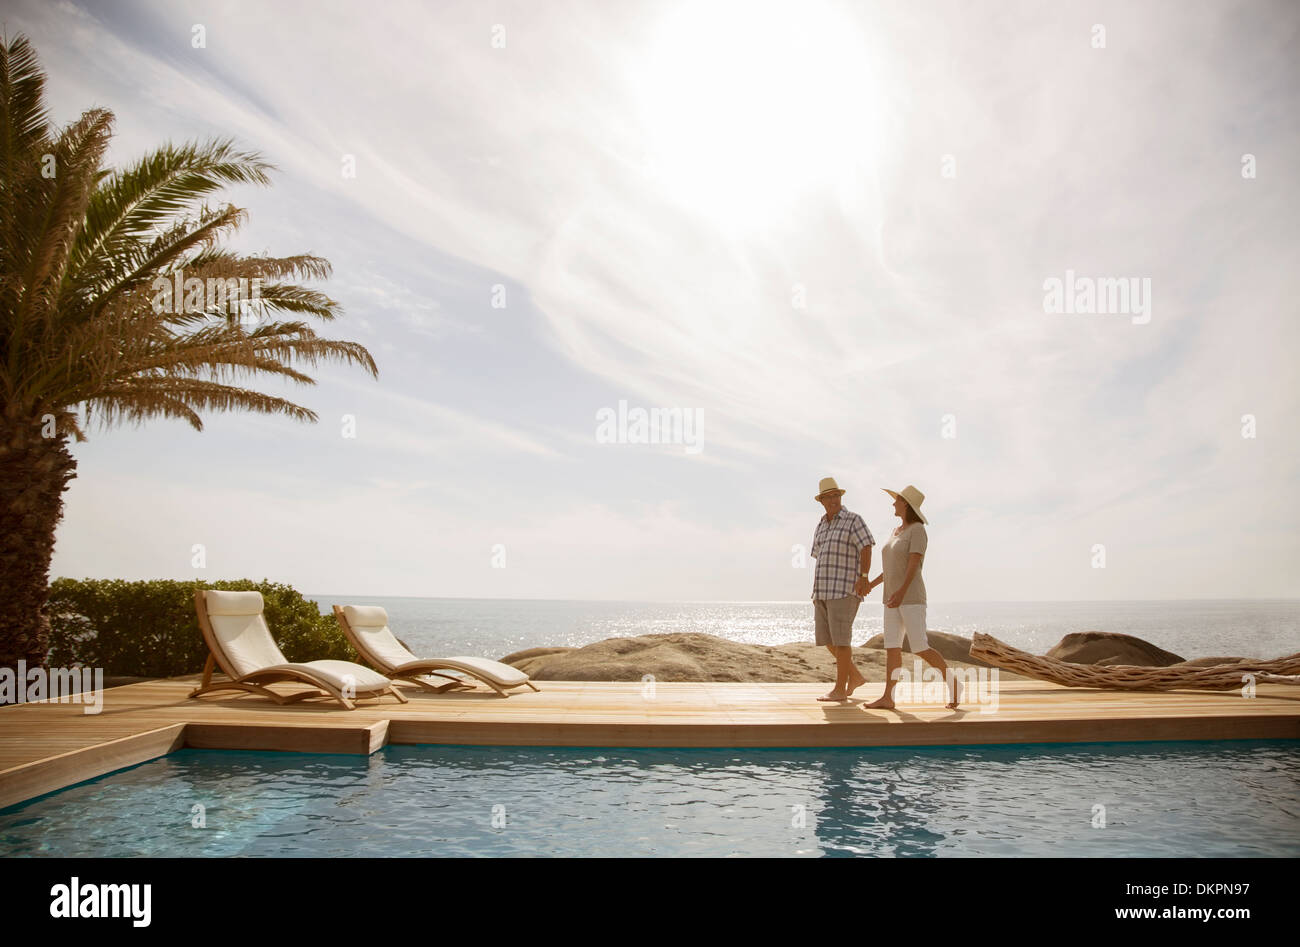 Older couple relaxing together by pool - Stock Image